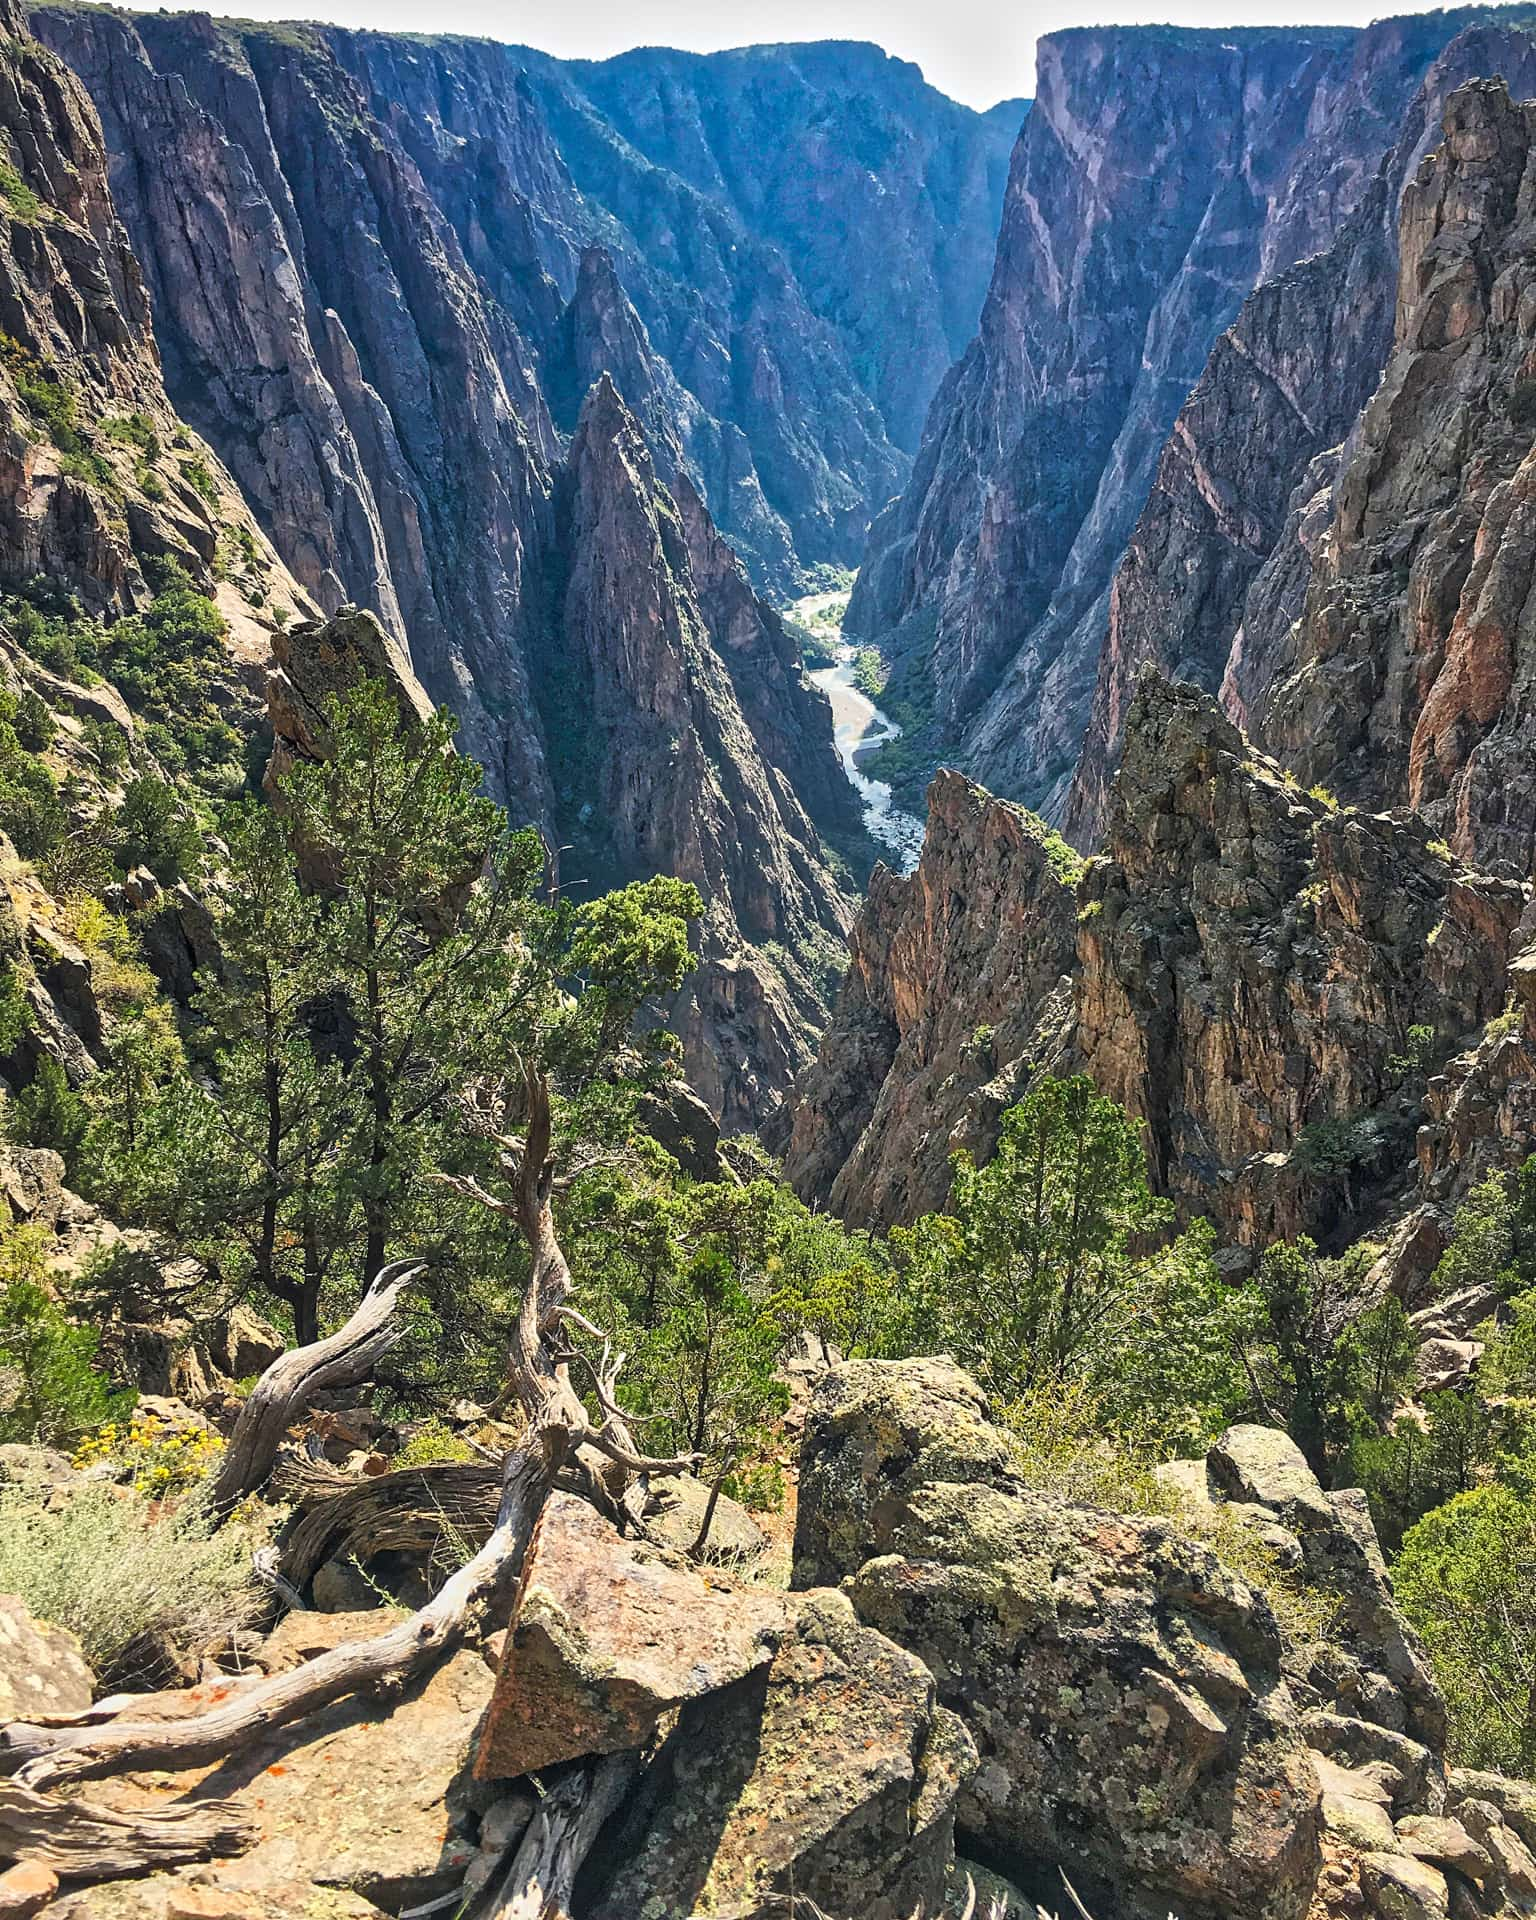 Black Canyon of the Gunnison from the SOB Draw